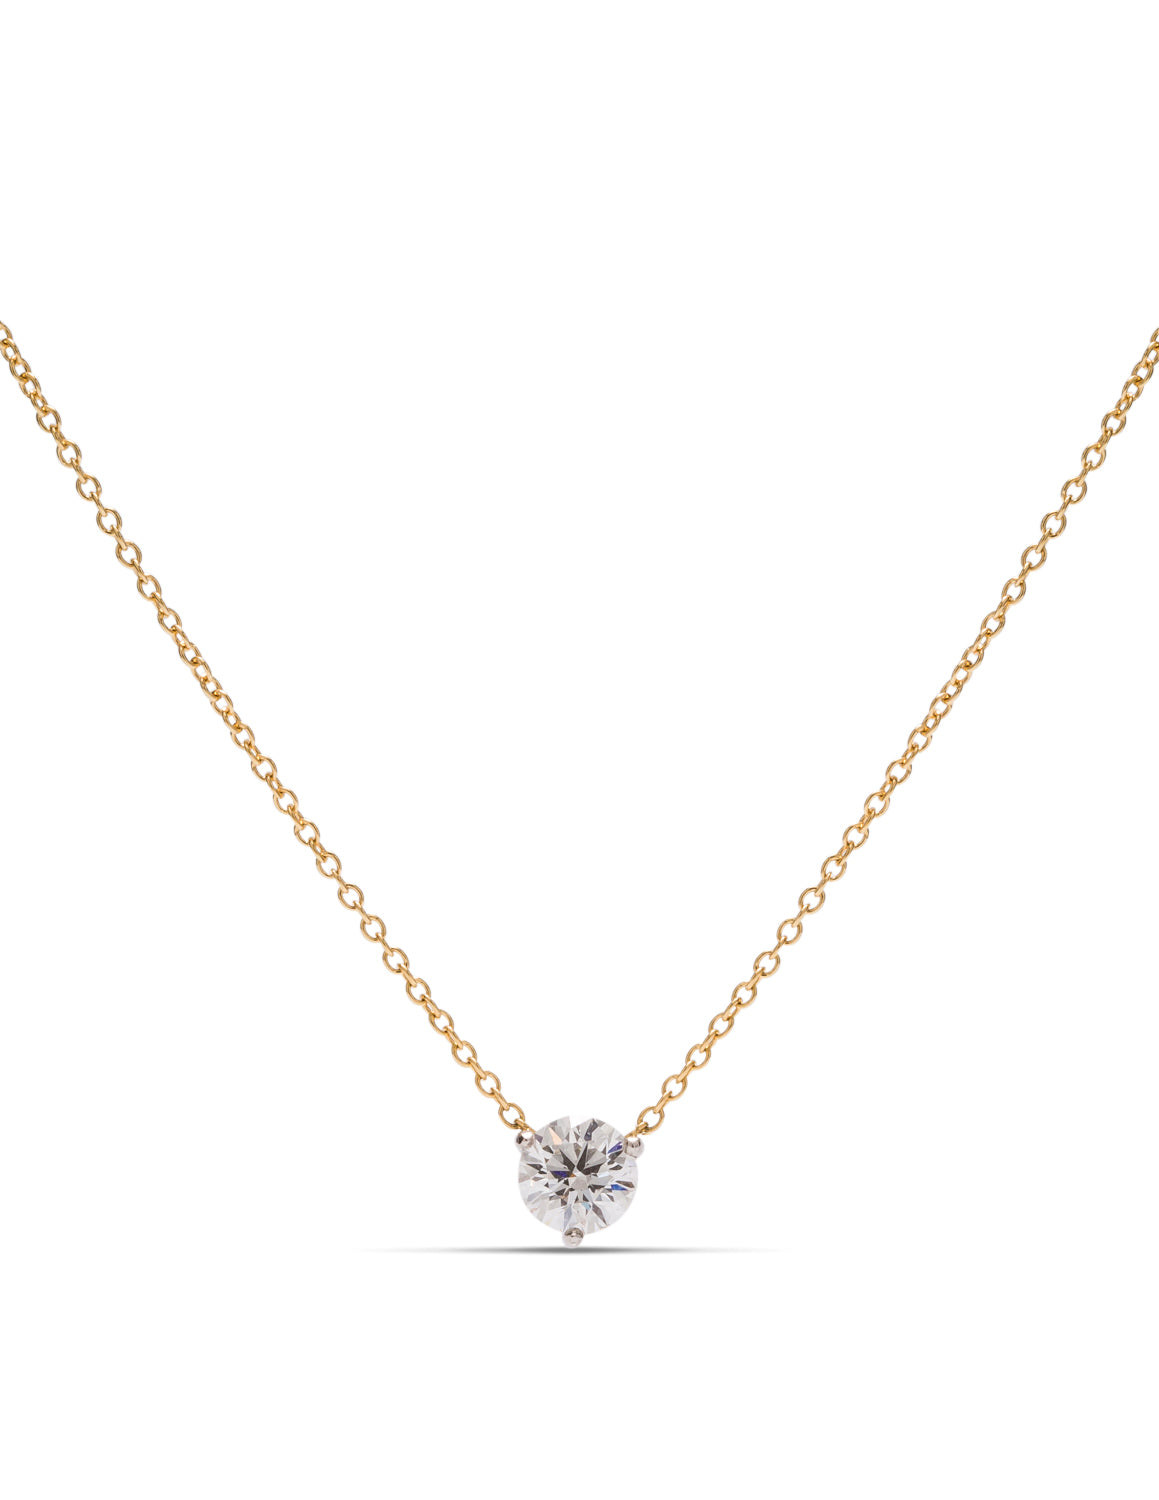 18k Gold & Platinum Hearts on Fire Diamond Necklace - Charles Koll Jewellers